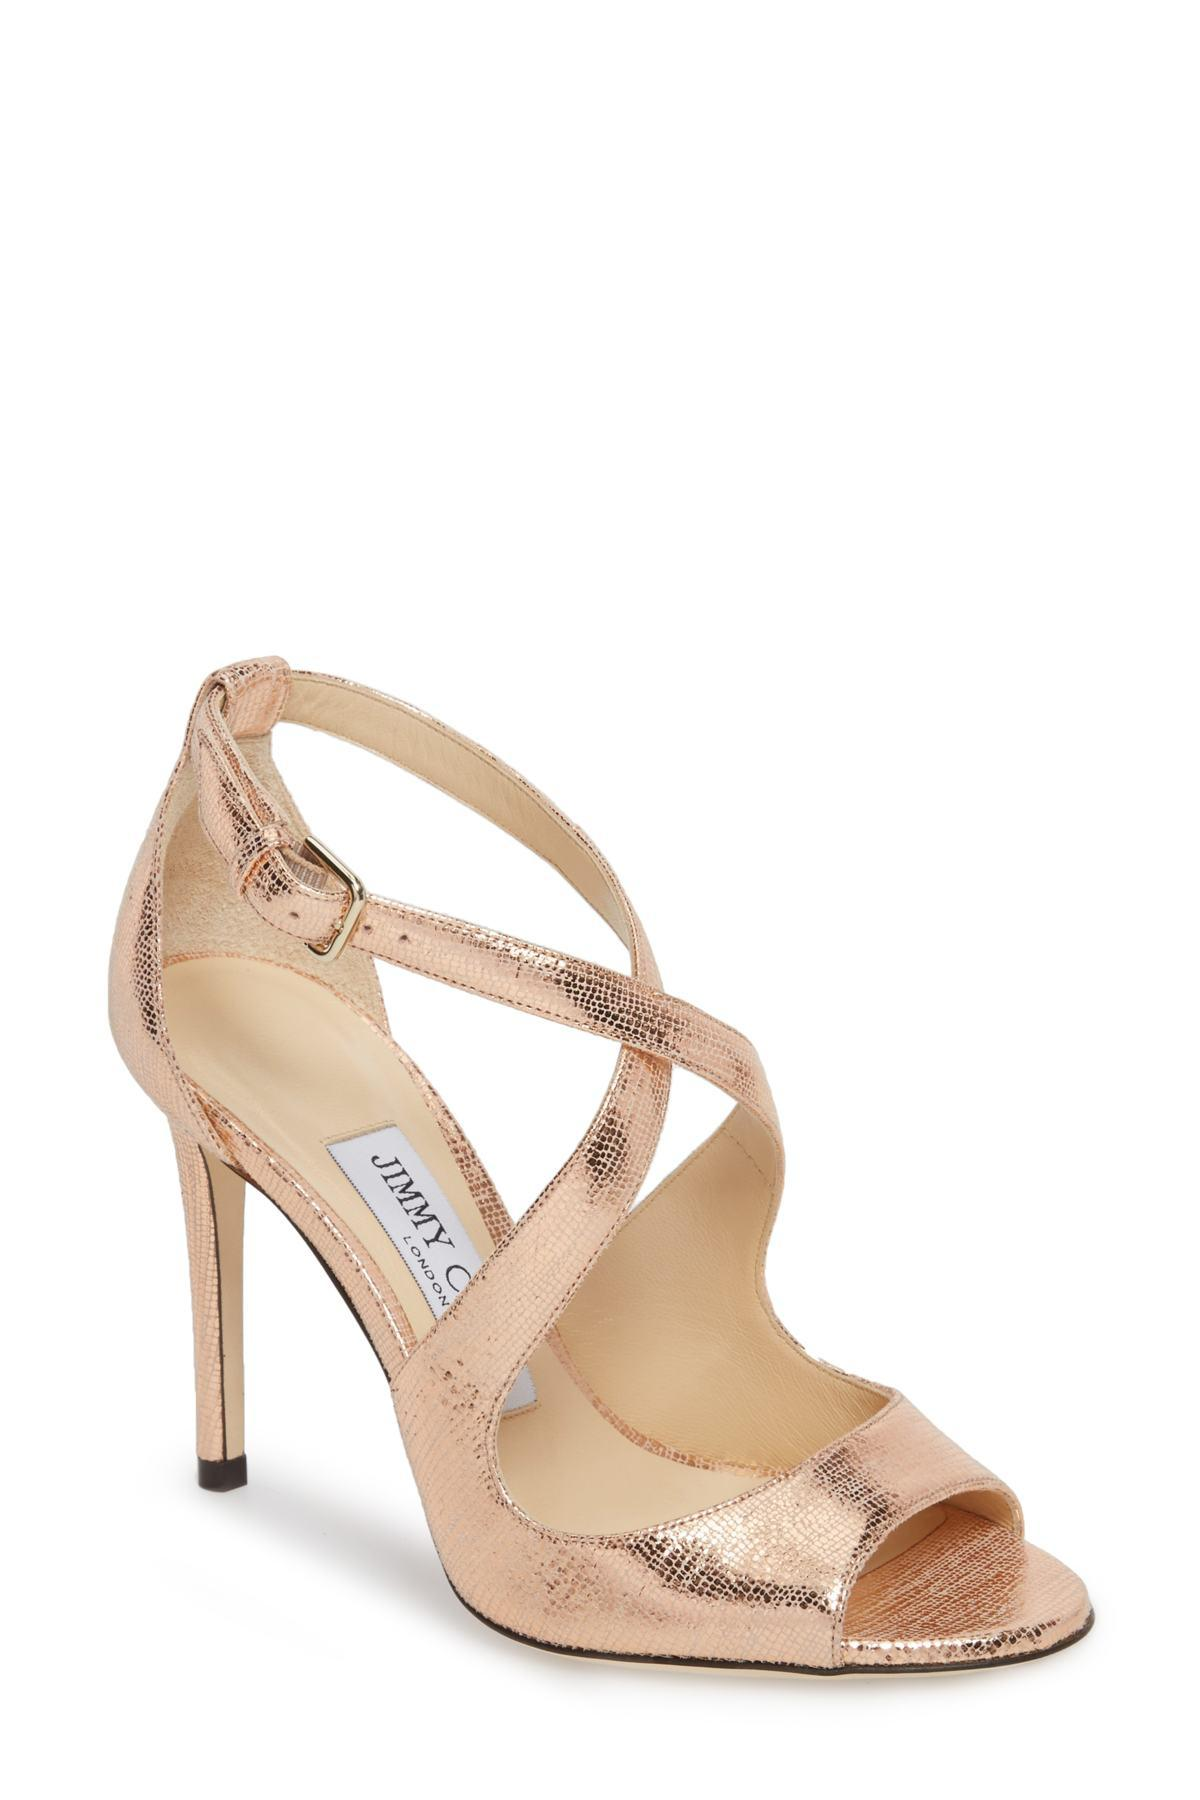 f707e202063 Lyst - Jimmy Choo 100mm Emily Peep Toe Sandal in Metallic